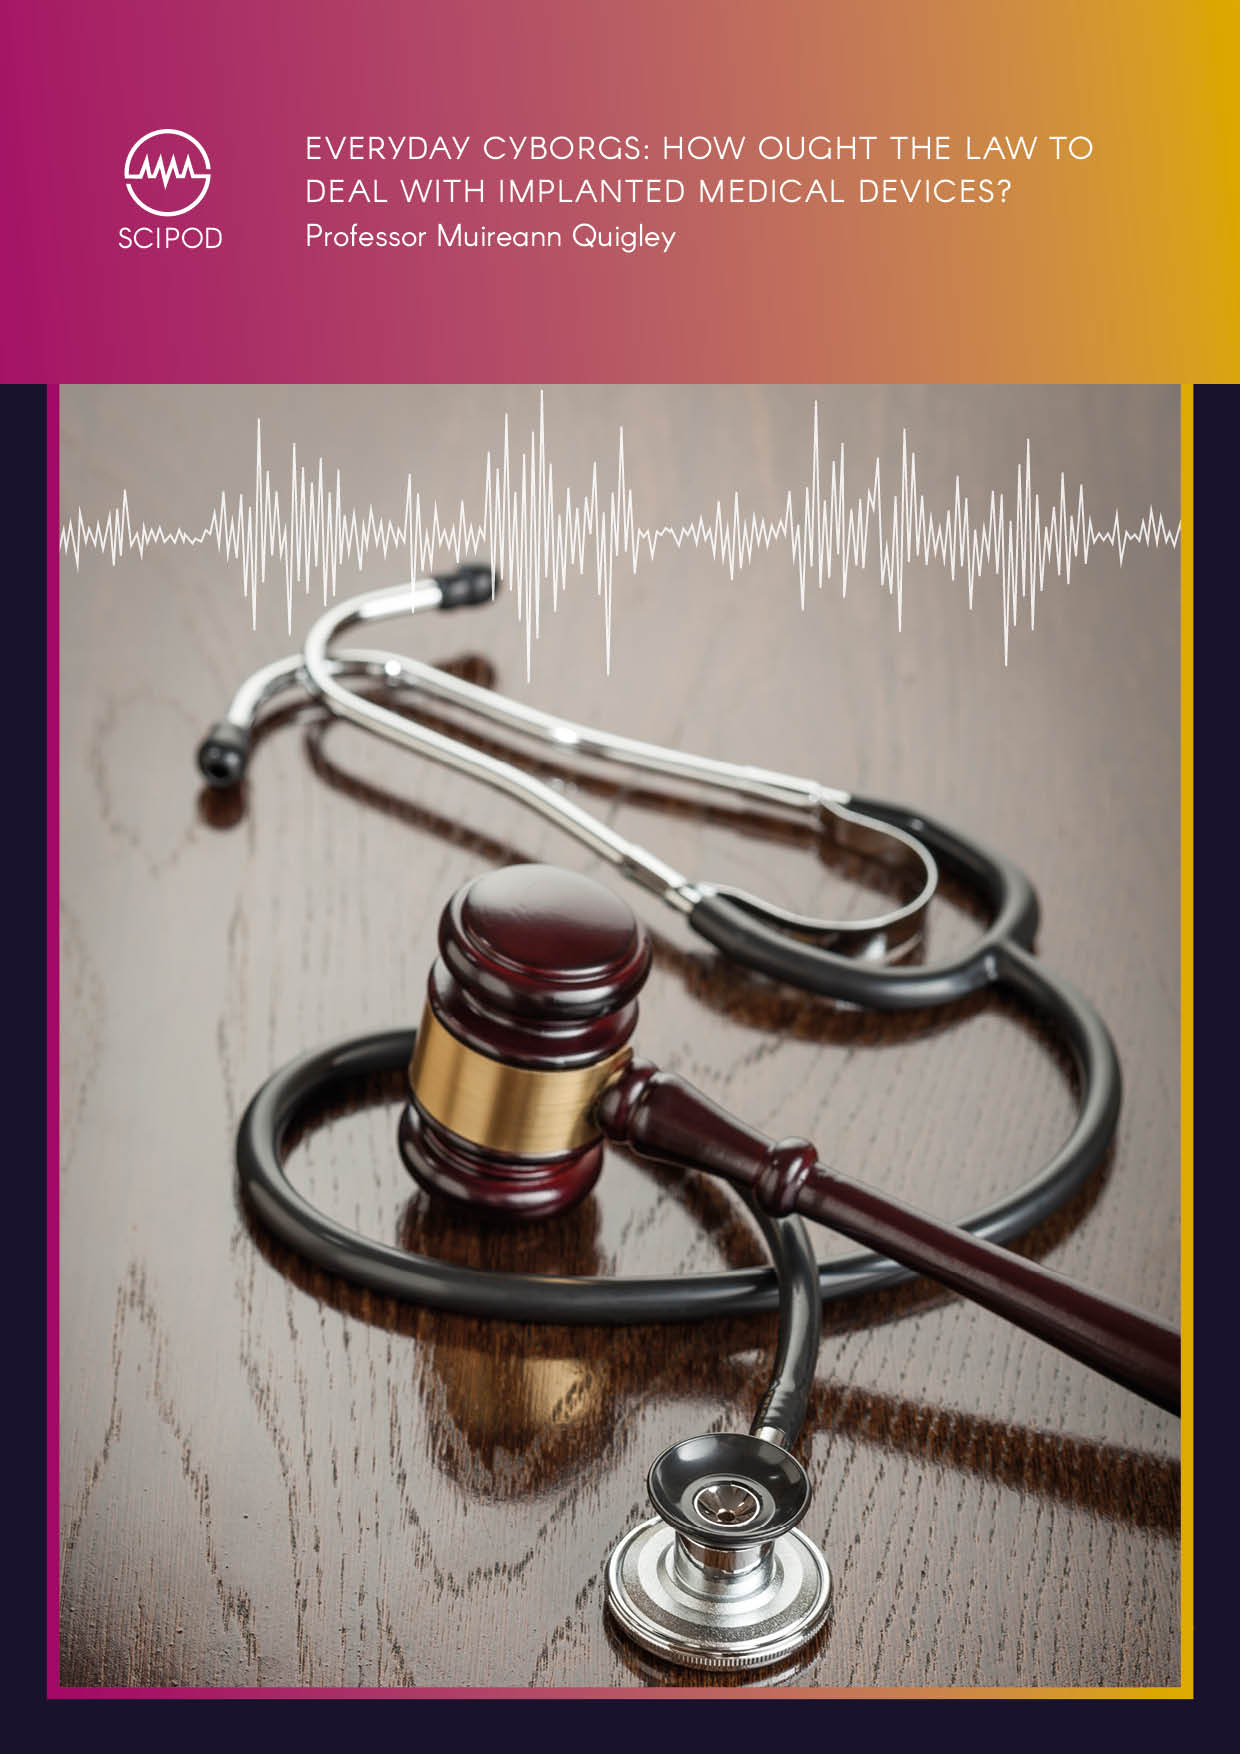 How Ought the Law to Deal with Implanted Medical Devices – Professor Muireann Quigley, University of Birmingham